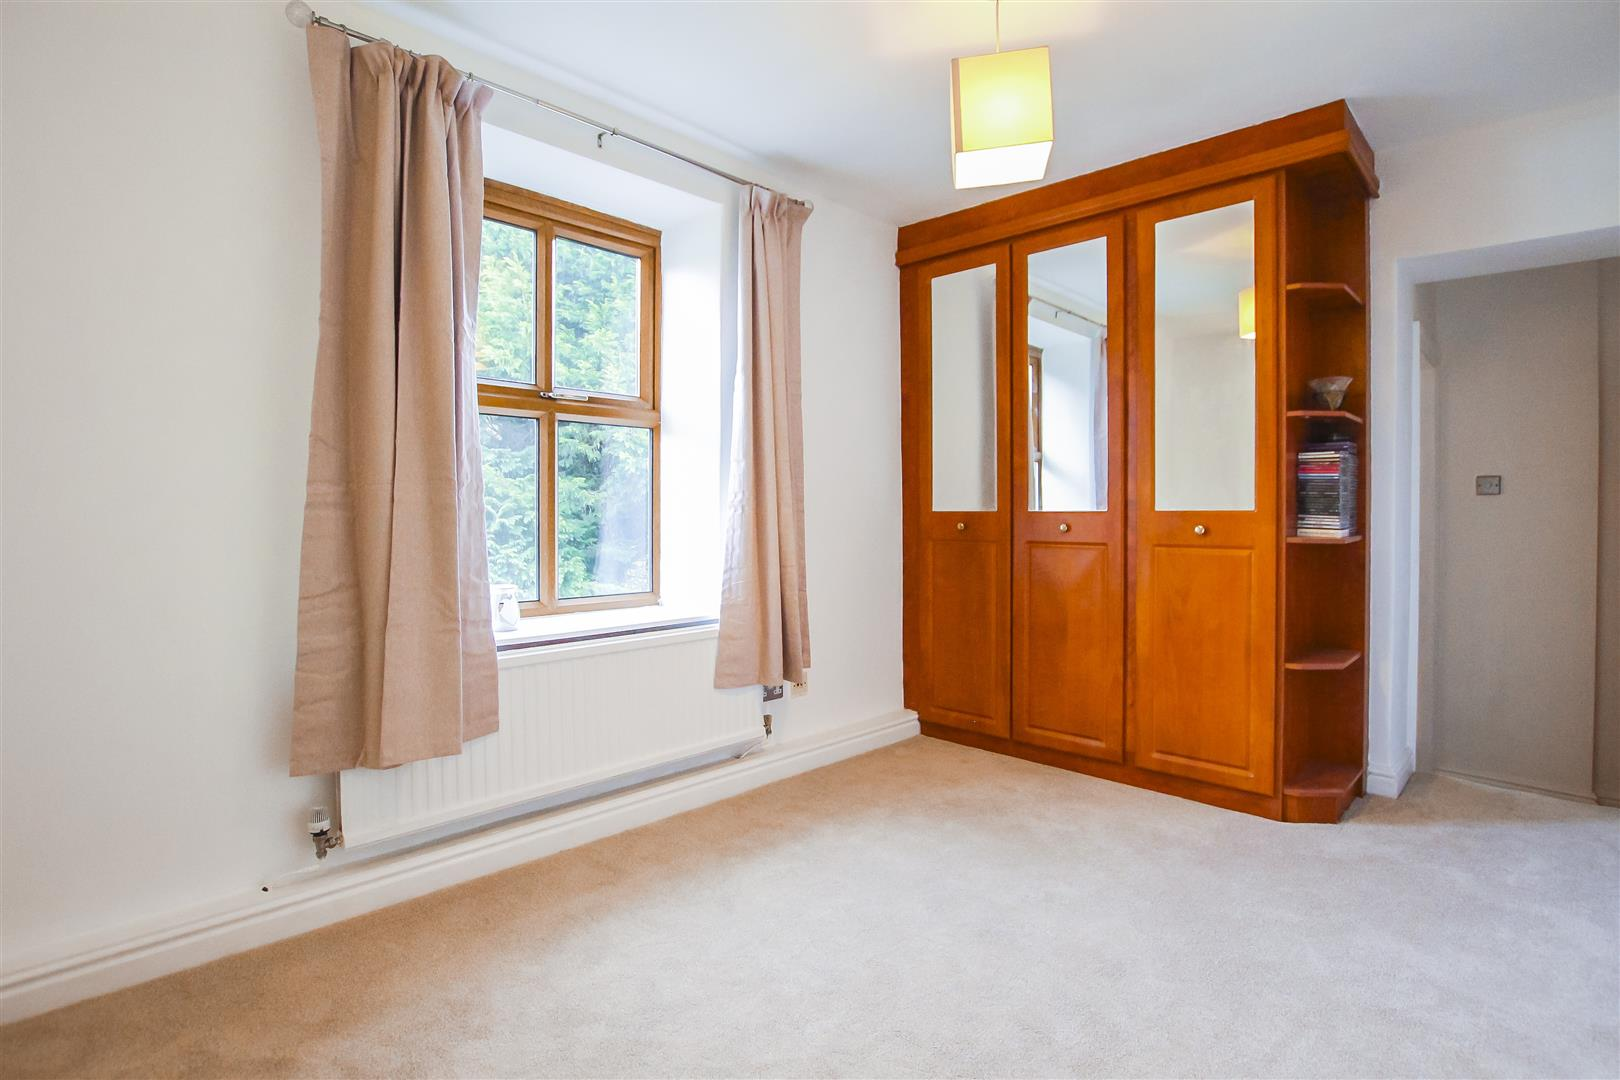 4 Bedroom Farmhouse For Sale - Image 20